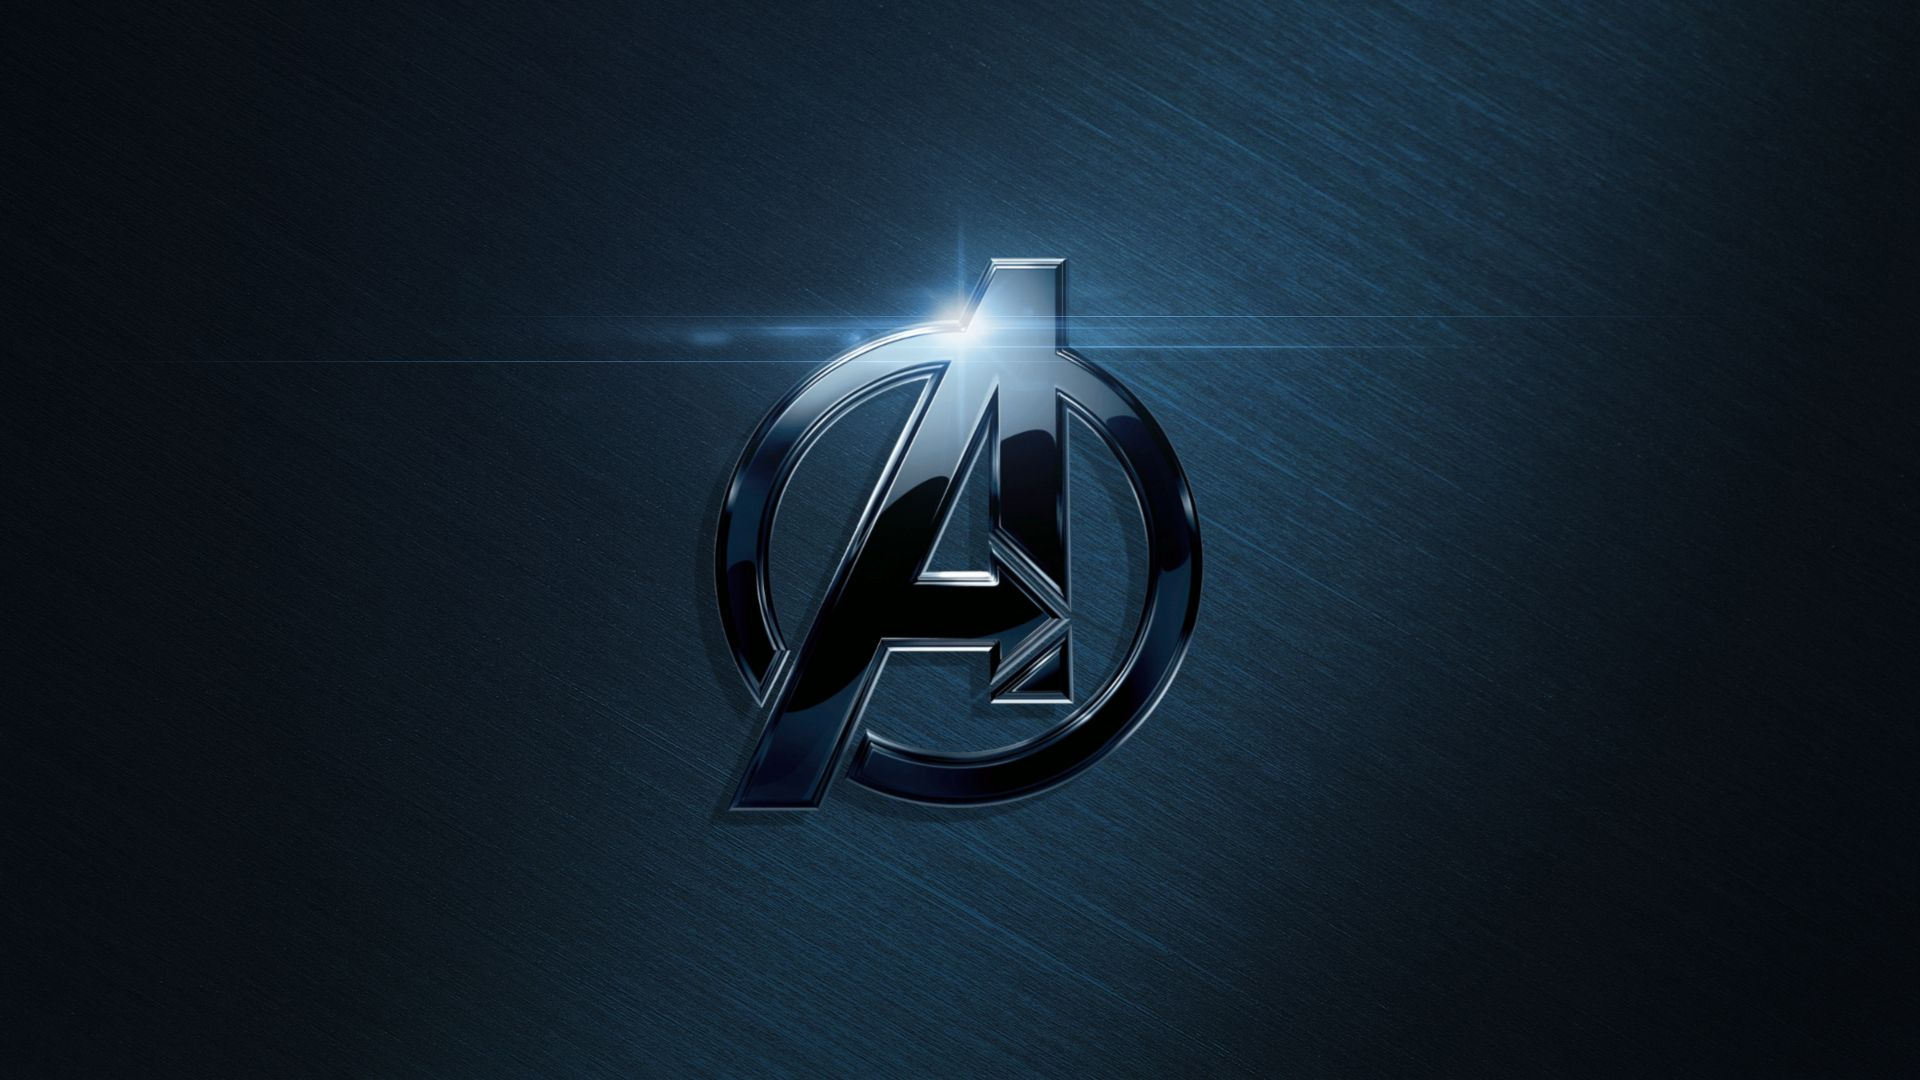 The Avengers Wallpapers Movie Best Hd 1080p 17 My Nerd Is